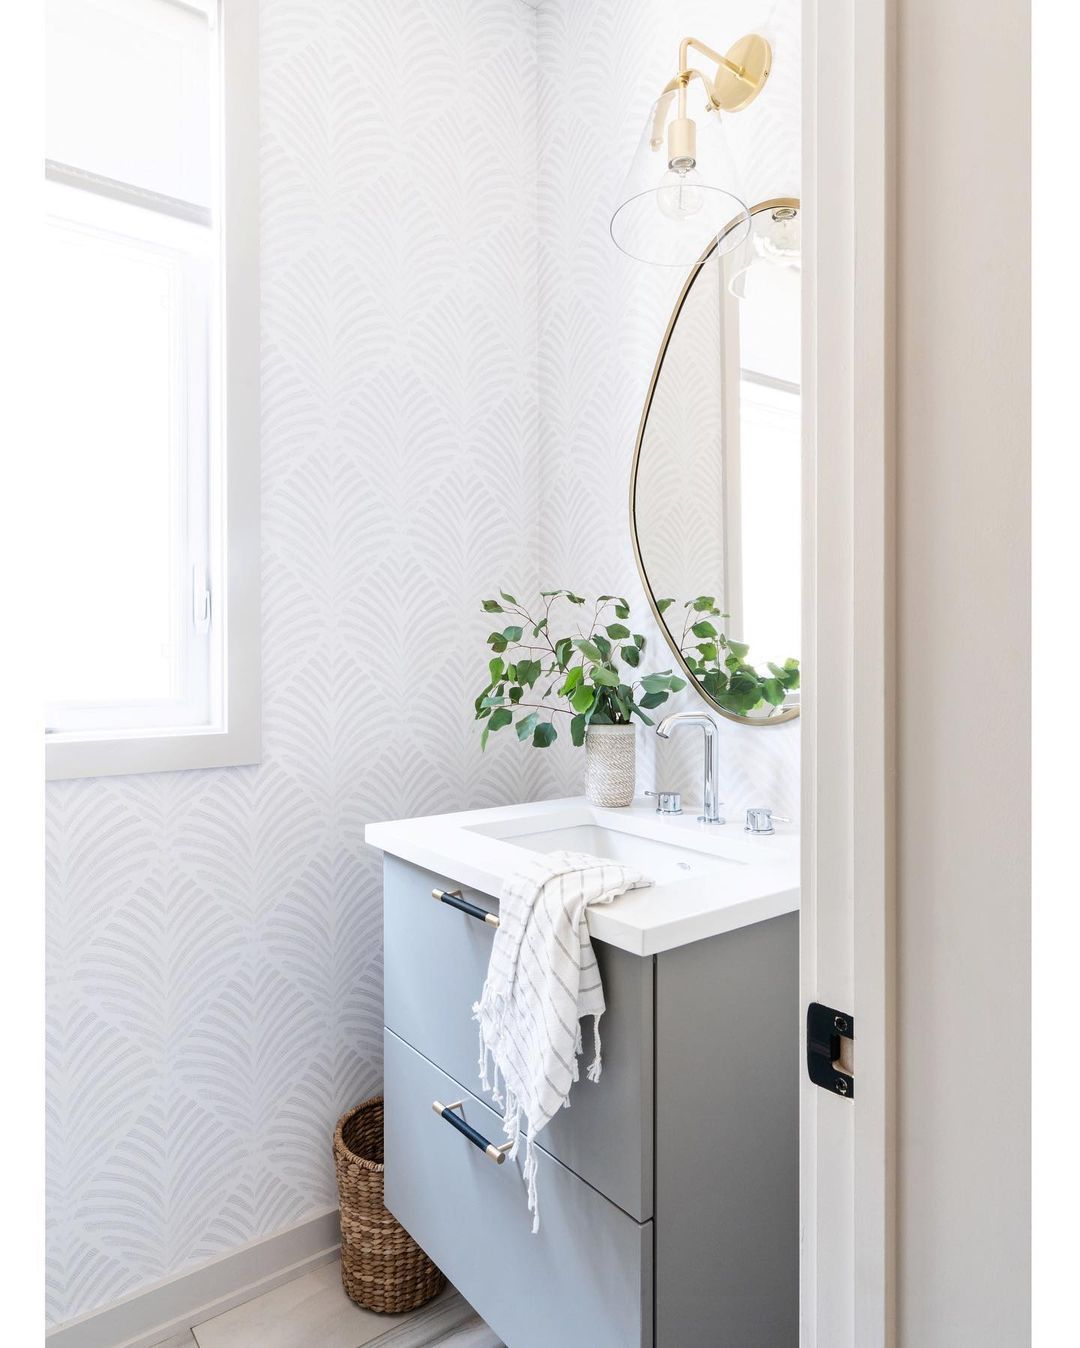 Powder room with wallpaper